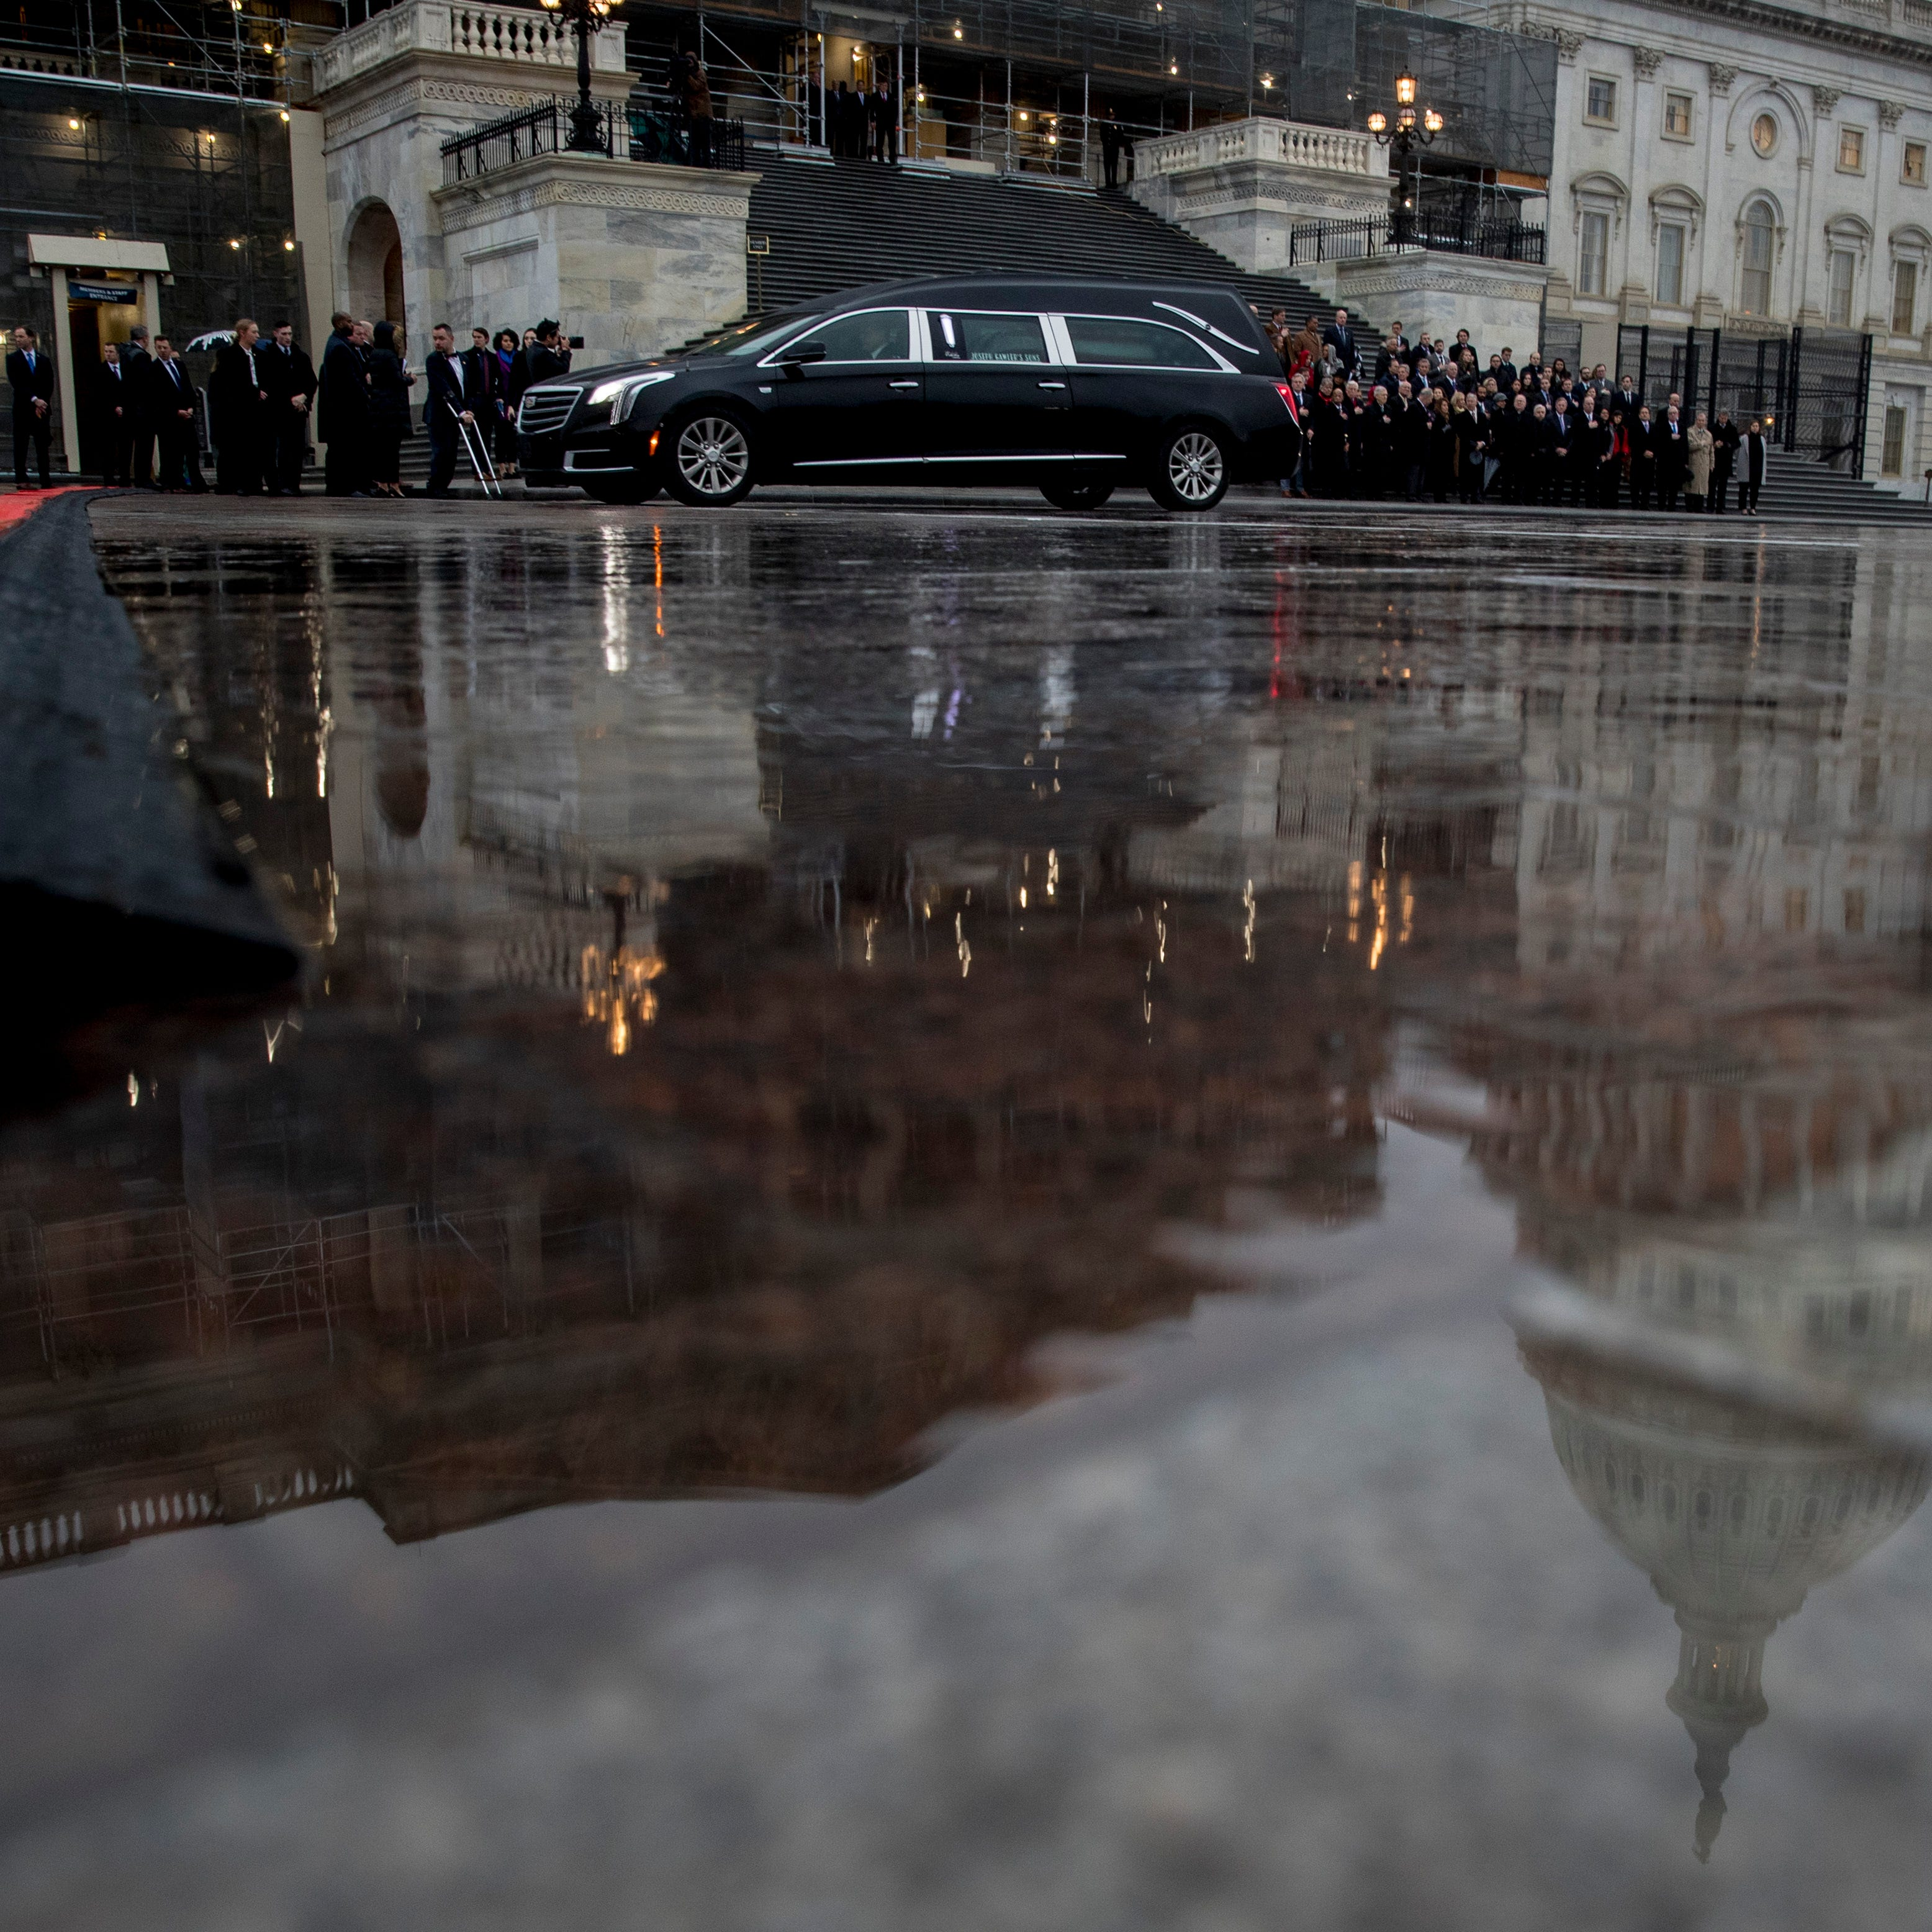 Weather forces U.S. reps to miss funeral, but Dingell arrives in D.C.